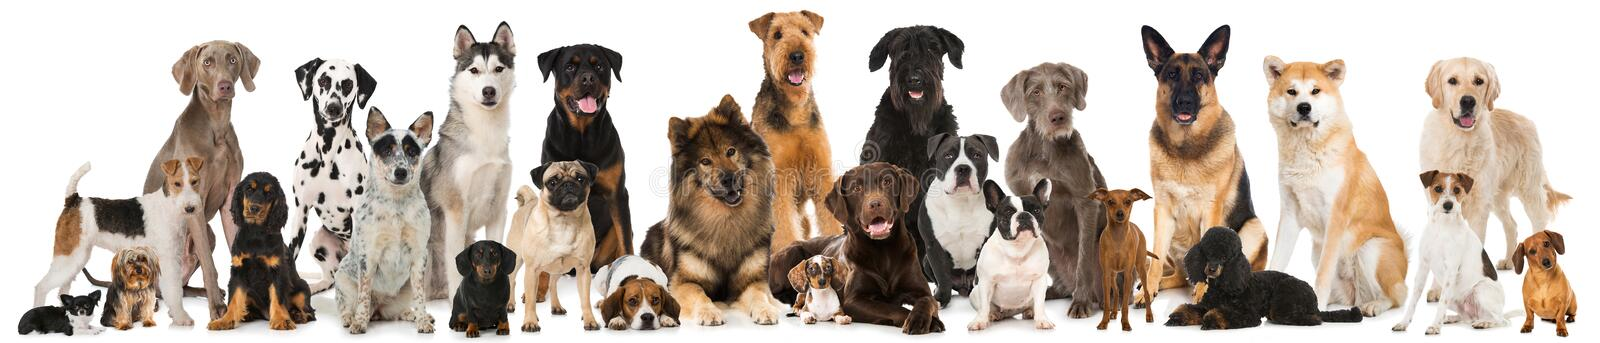 Groupe de chiens de race photos stock